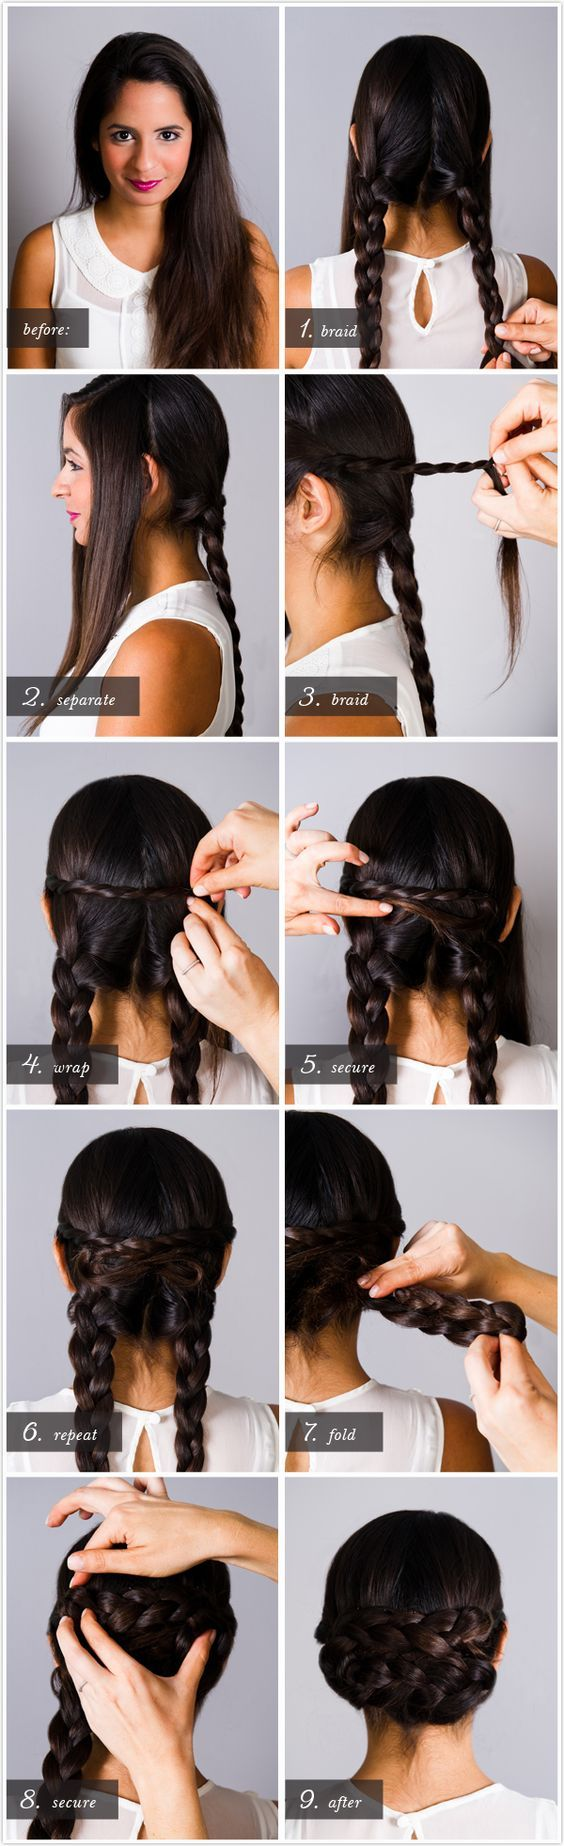 Tried to do this hairstyle this morning...my hair is long enough, but I think I have too many short layers. Also, it's difficult without a mirror. Gonna try again later - super cute!